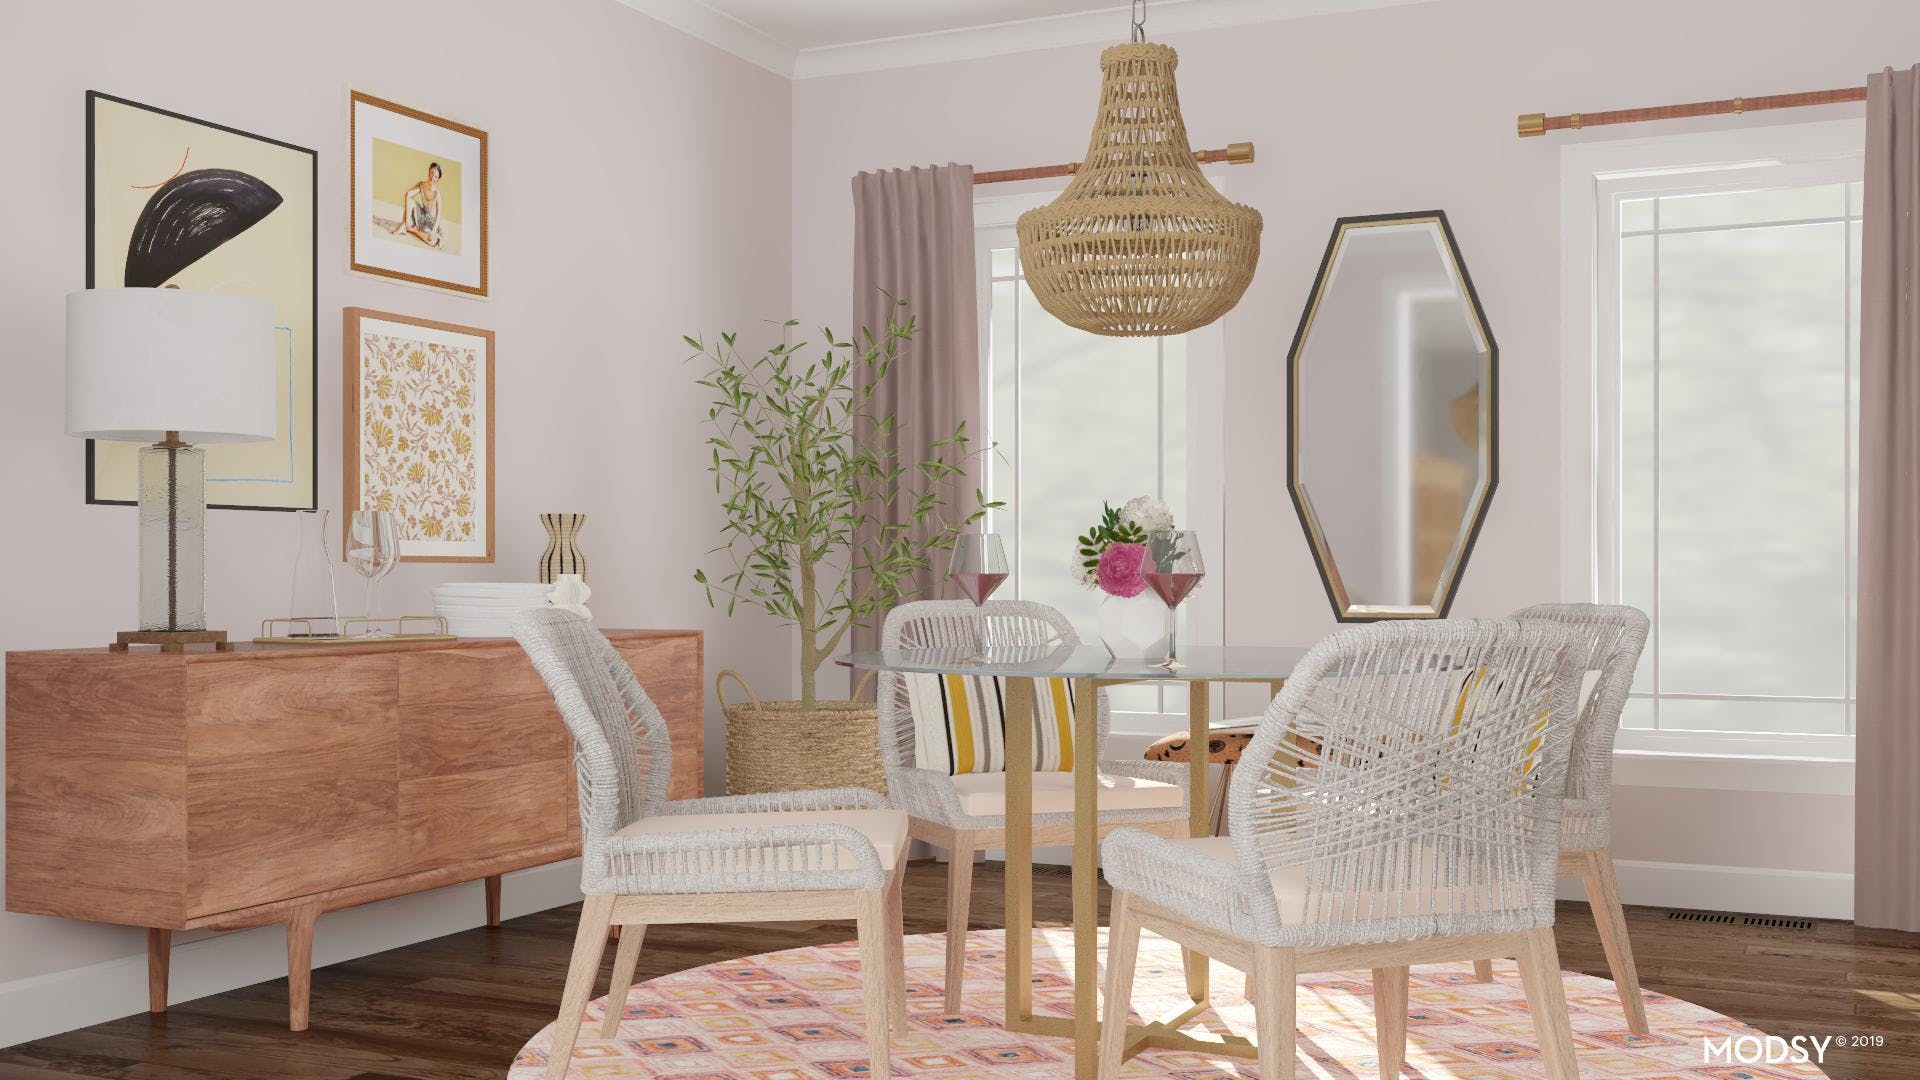 A Gallery Wall Statement in a Pastel Dining Room